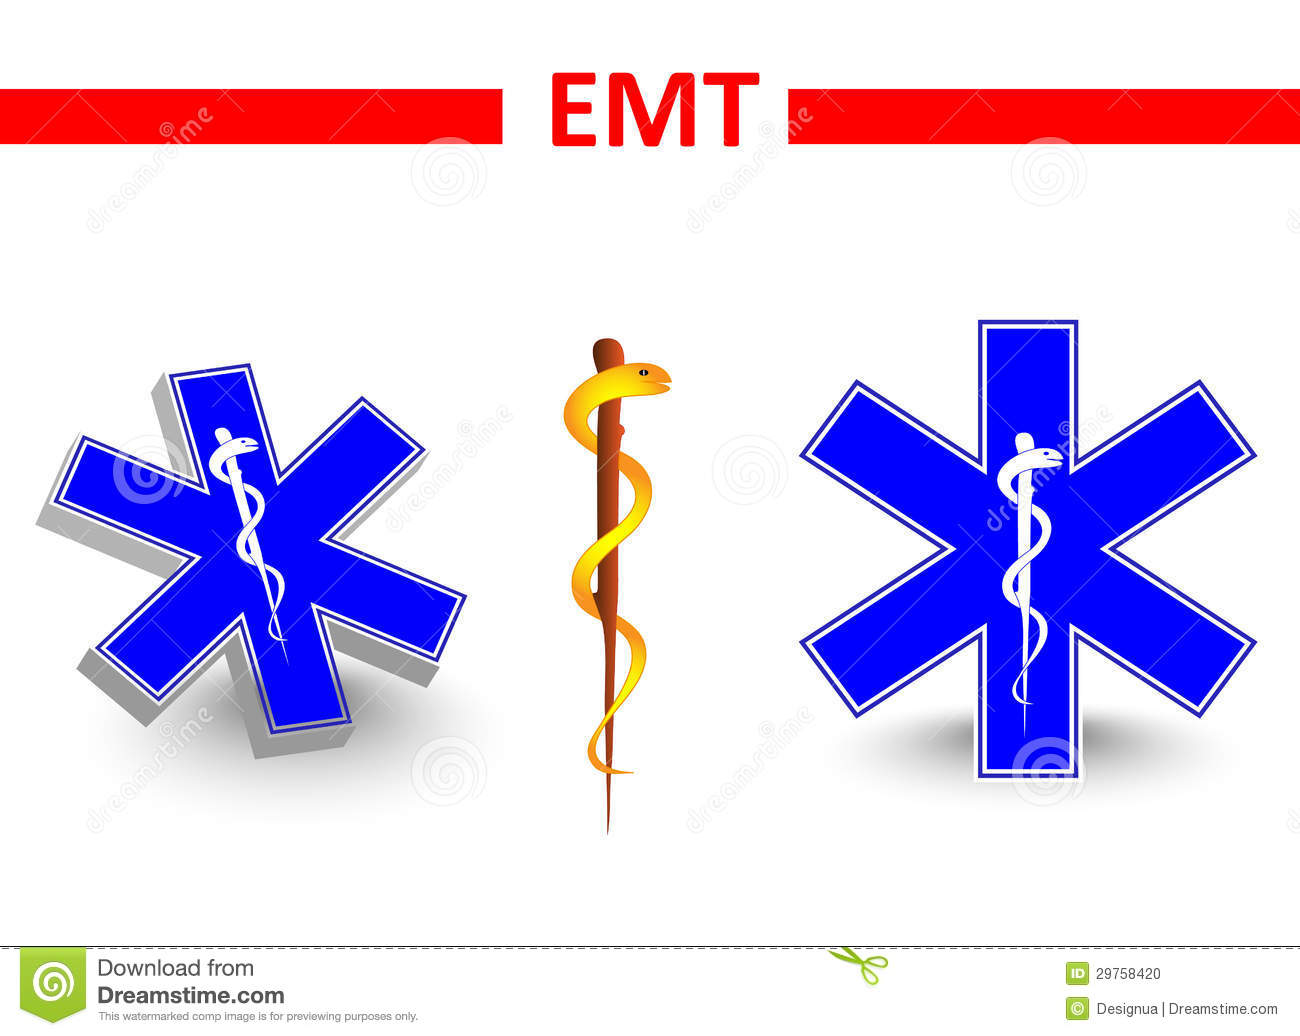 the purpose of an emergency medical technician